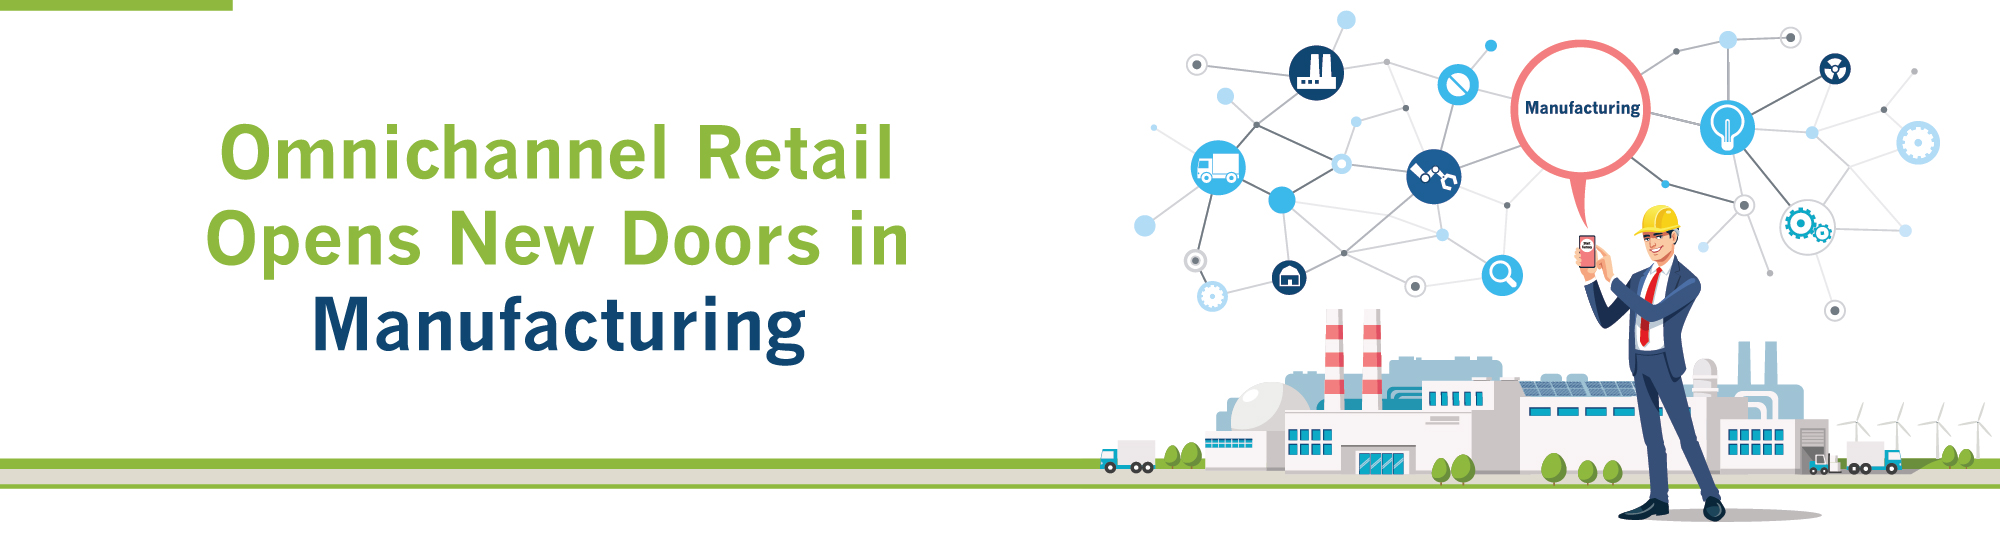 Omnichannel Retail Opens New Doors in Manufacturing